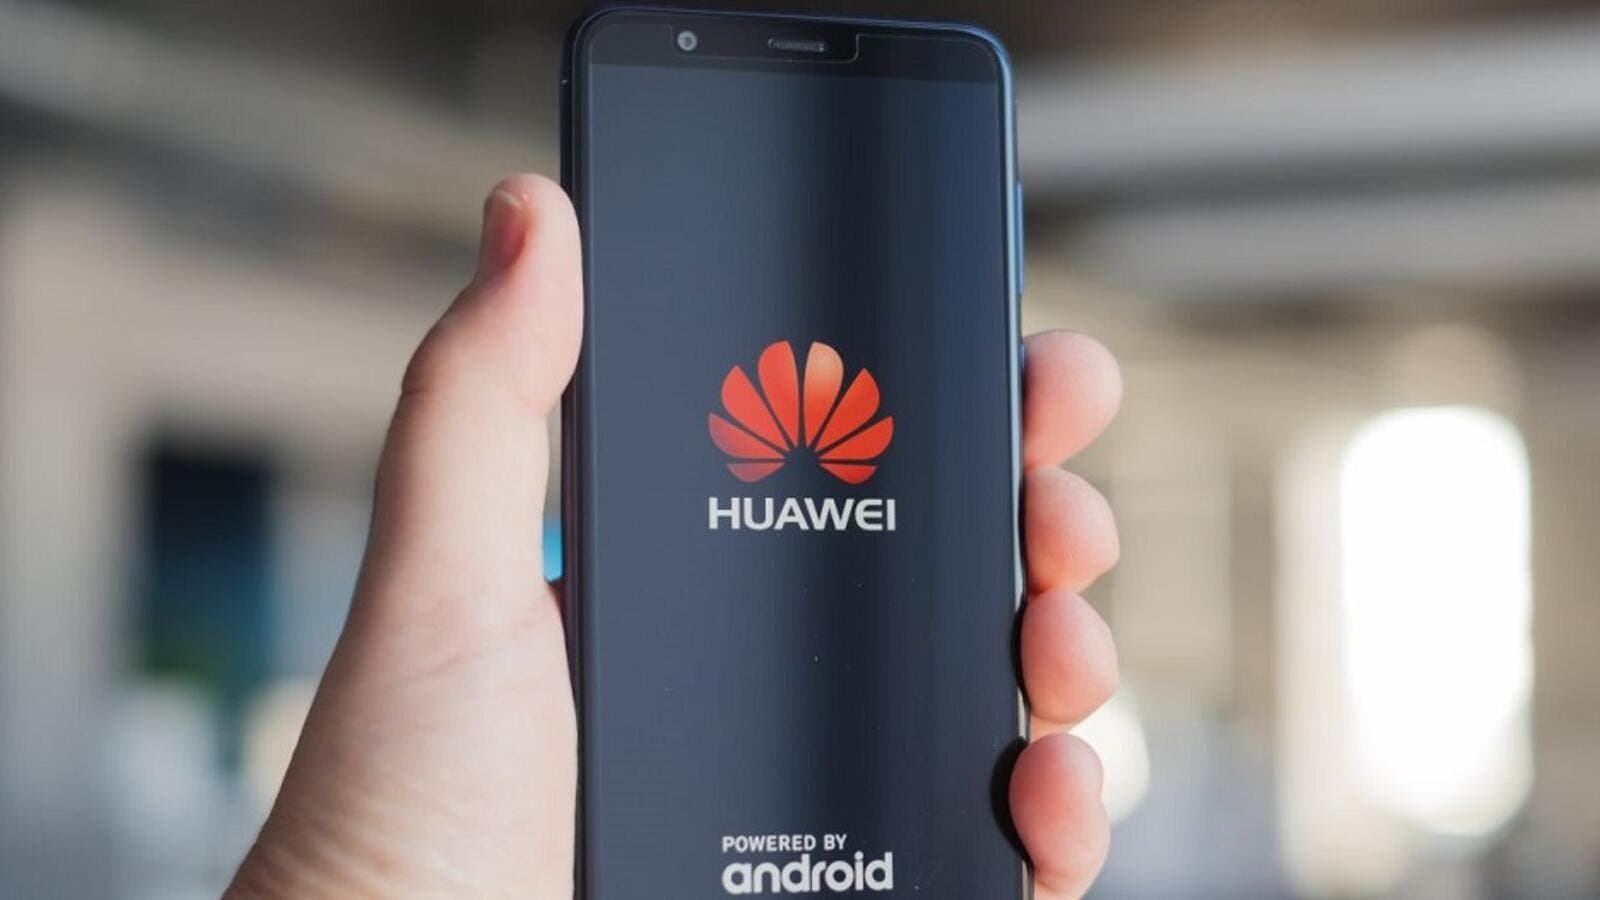 The Chinese technology giant now holds a 19 per cent share in the global smartphone market, the largest in Huawei's history.